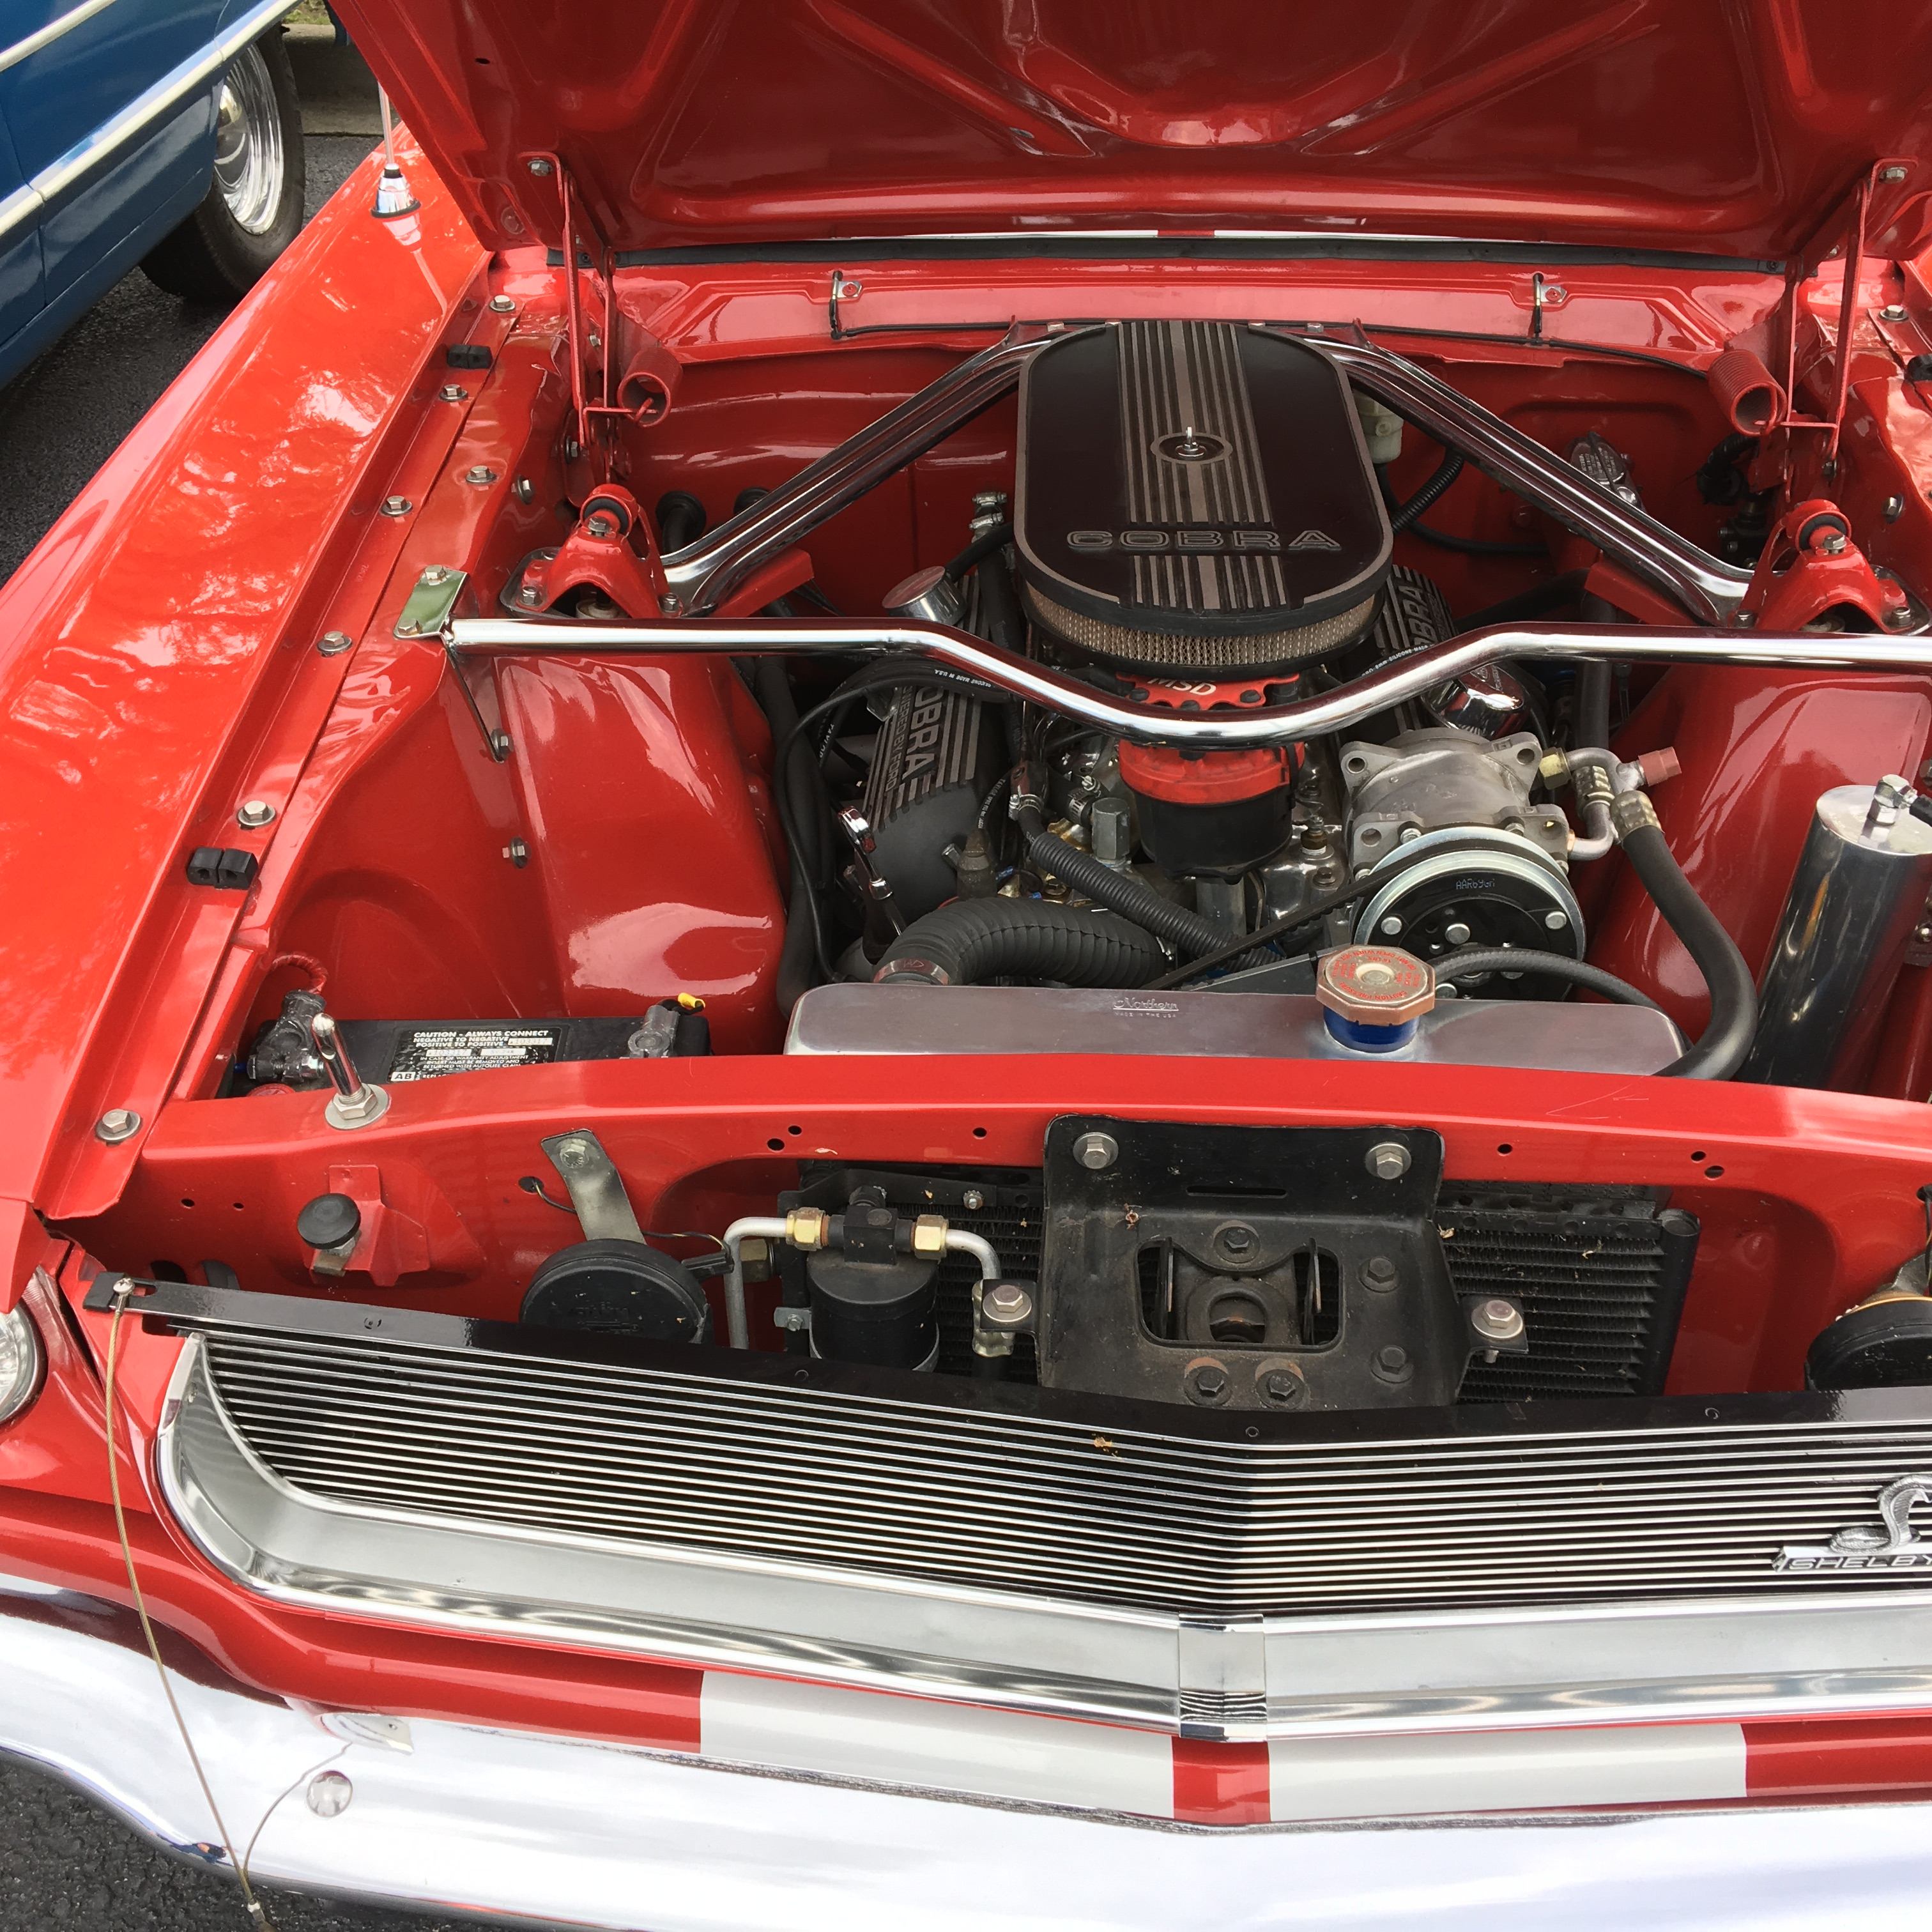 Ford Mustang For Sale In Ga: 1966 Ford Mustang 350GT Clone For Sale